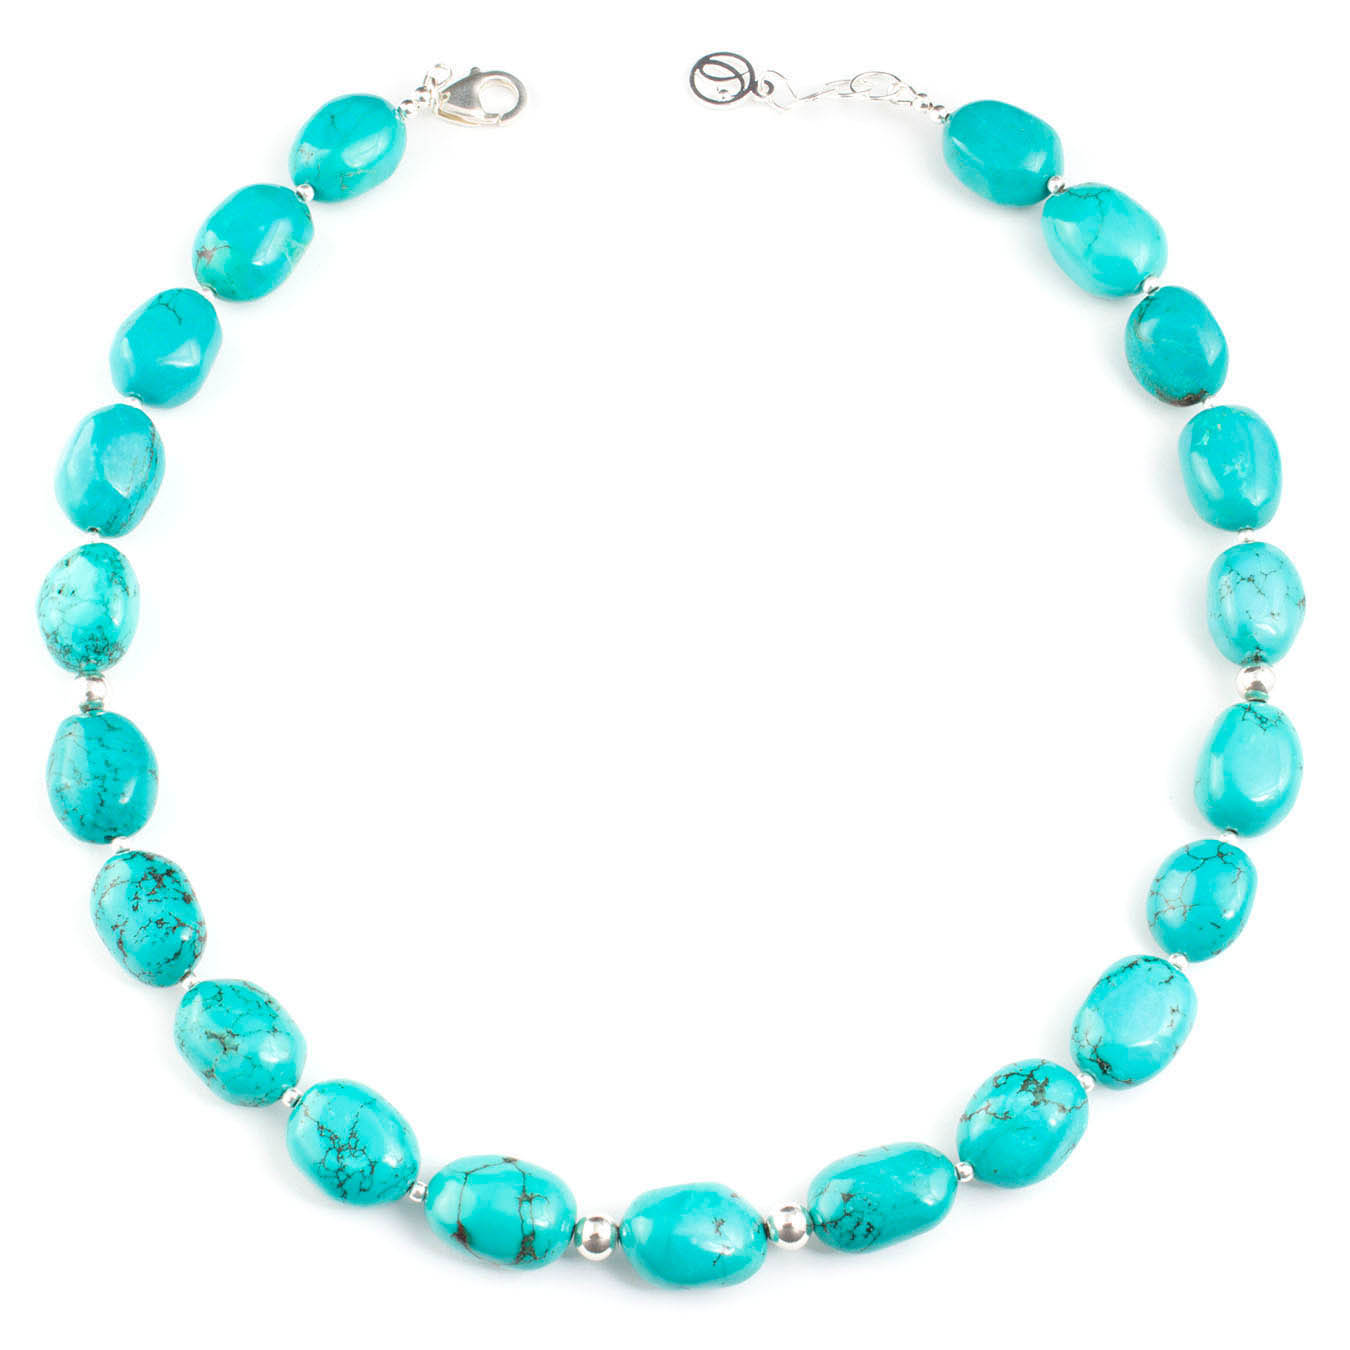 Artisan birthstone necklace made of turquoise nuggets and silver